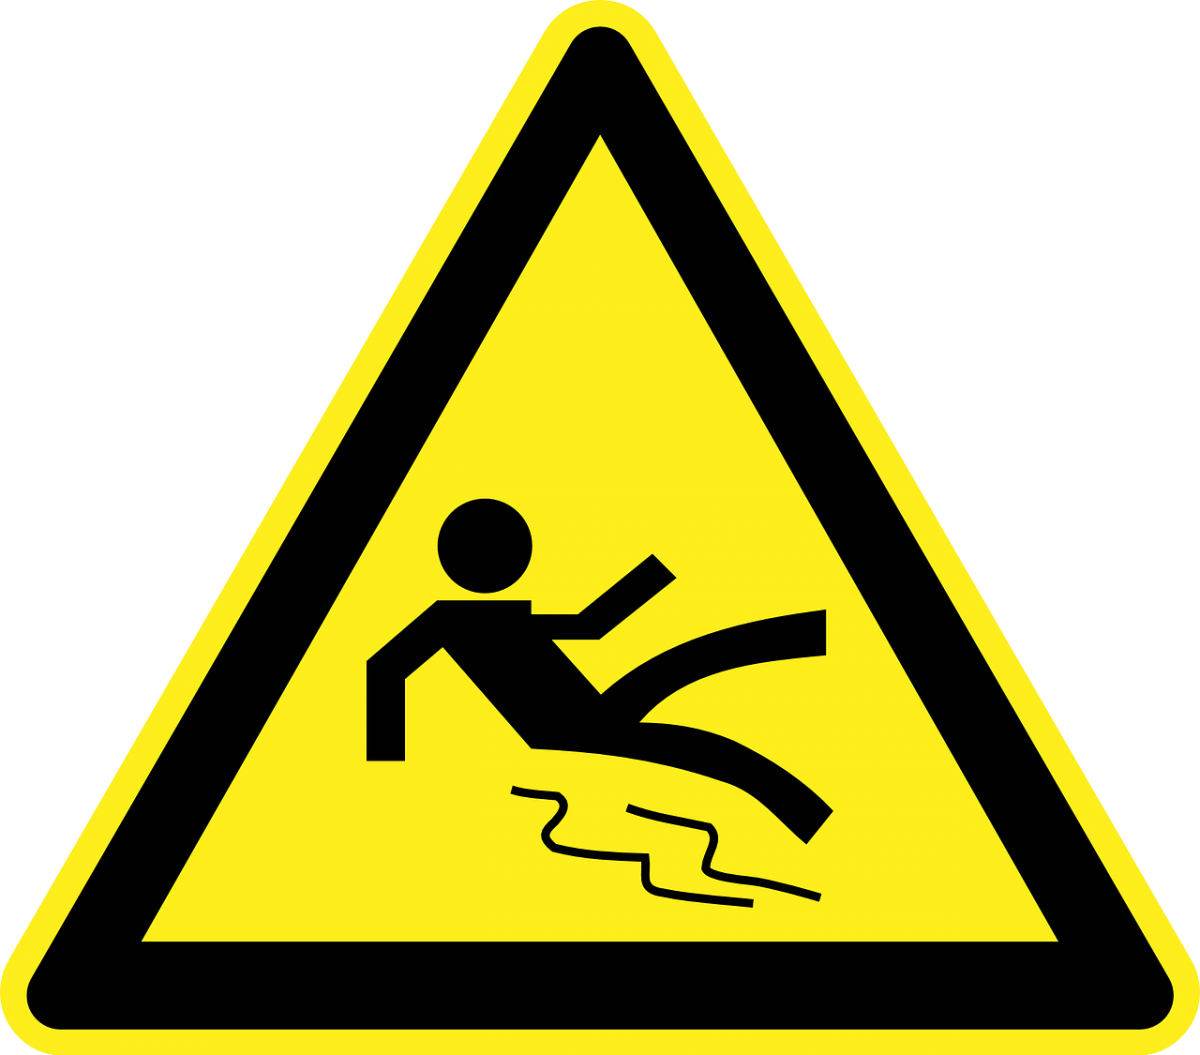 Avoiding Slip and Fall Accidents at Work